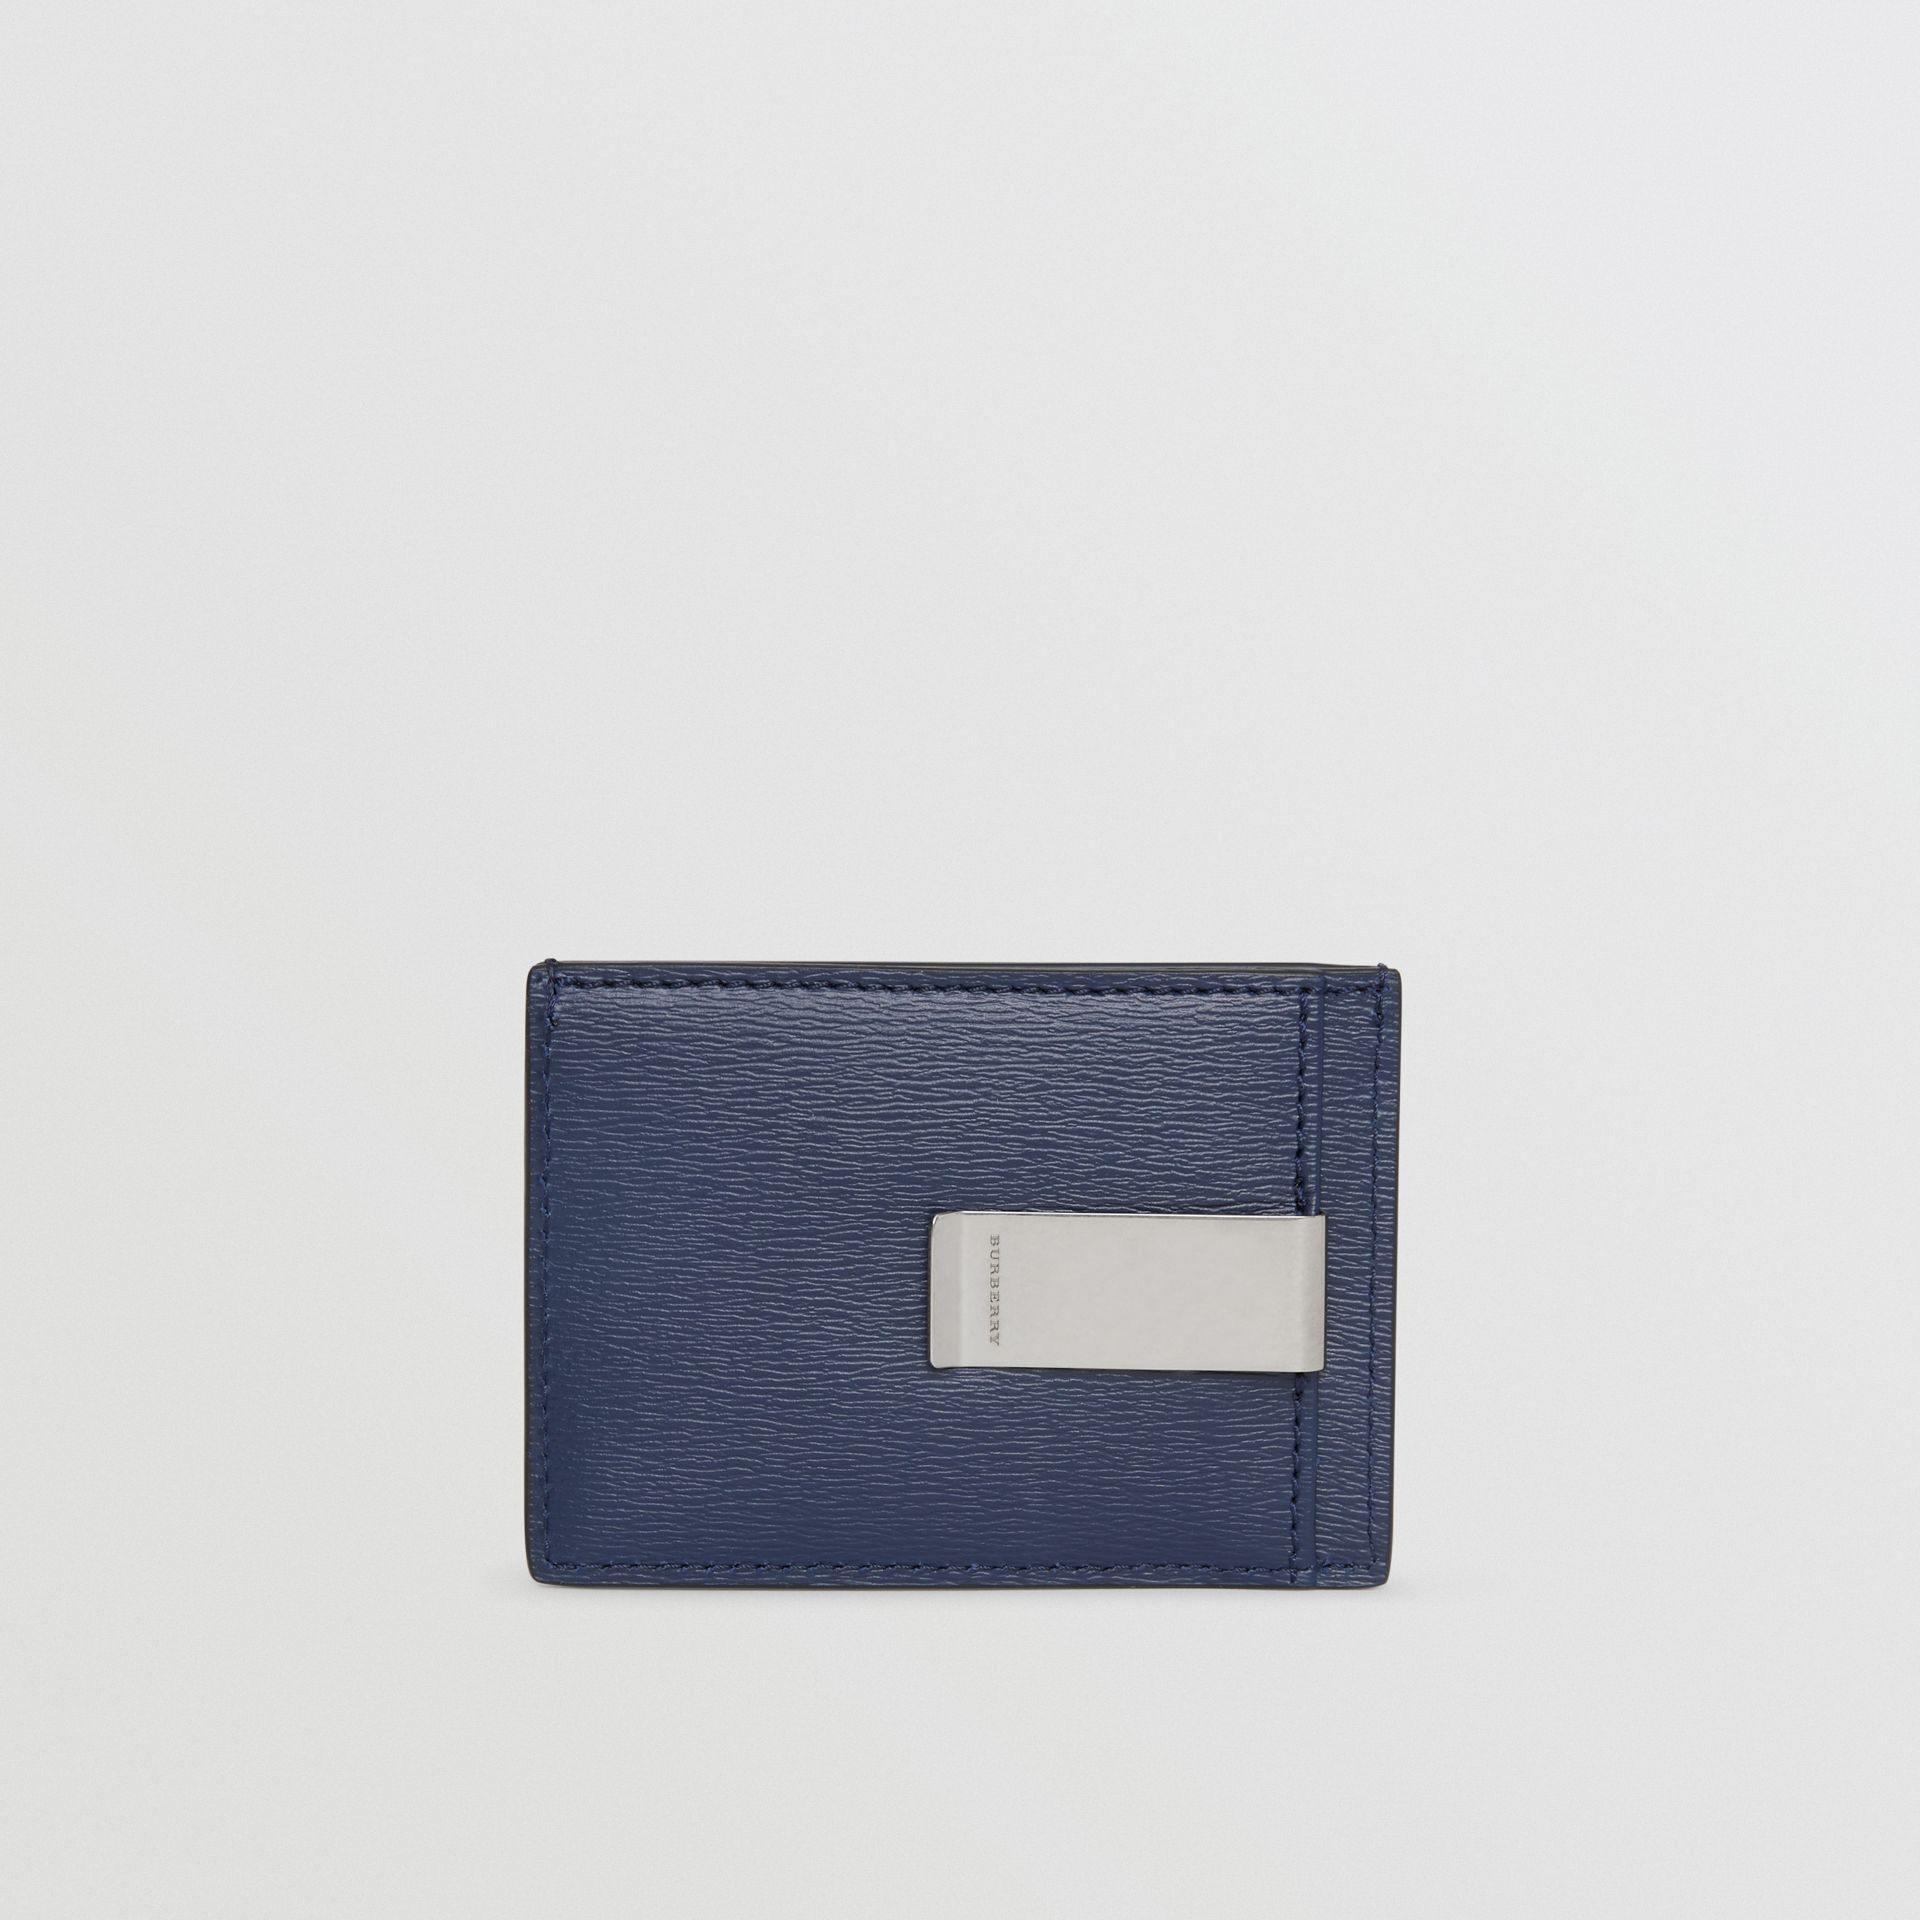 London Leather Money Clip Card Case in Navy - Men | Burberry - gallery image 4